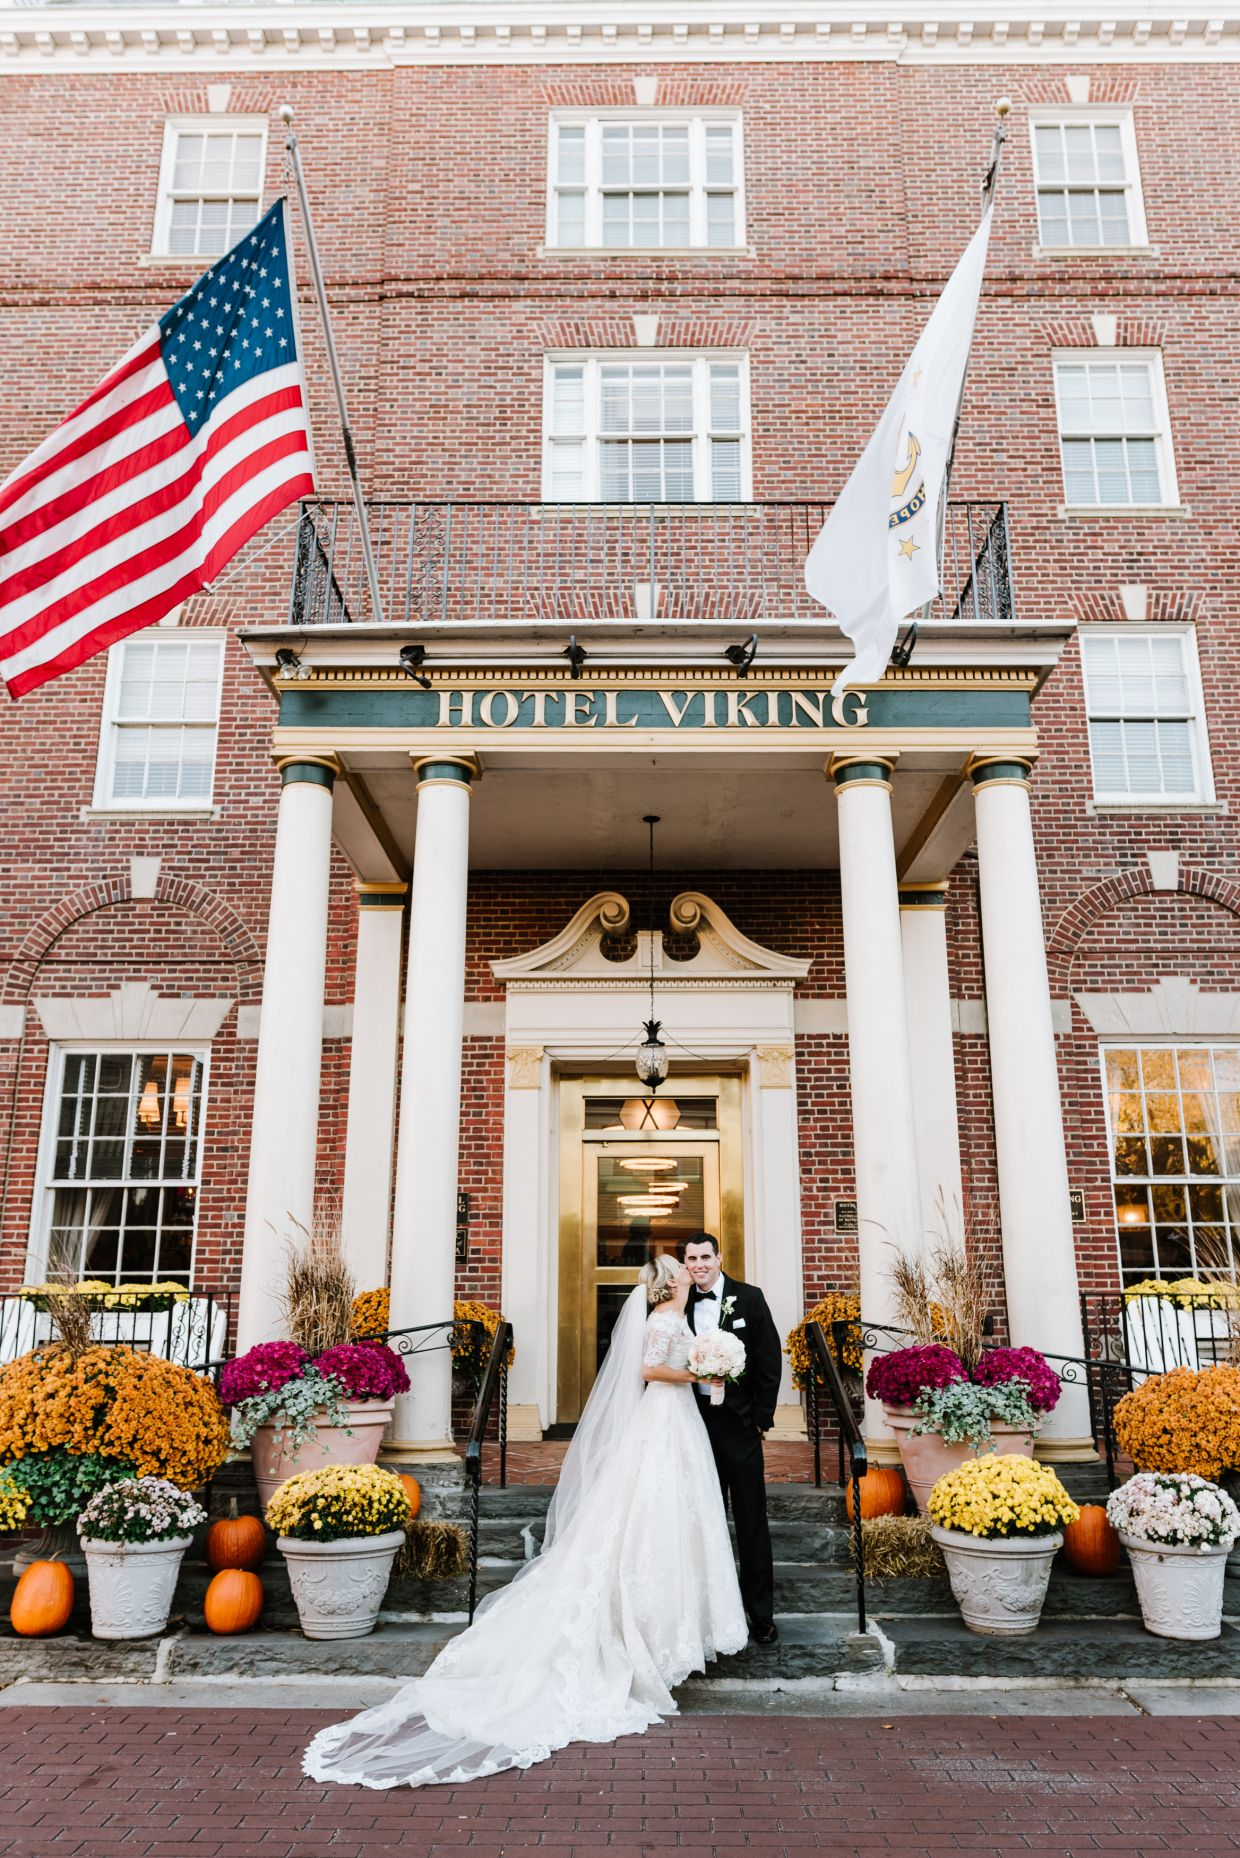 Kristin And Greg S Elegant Hotel Viking Wedding